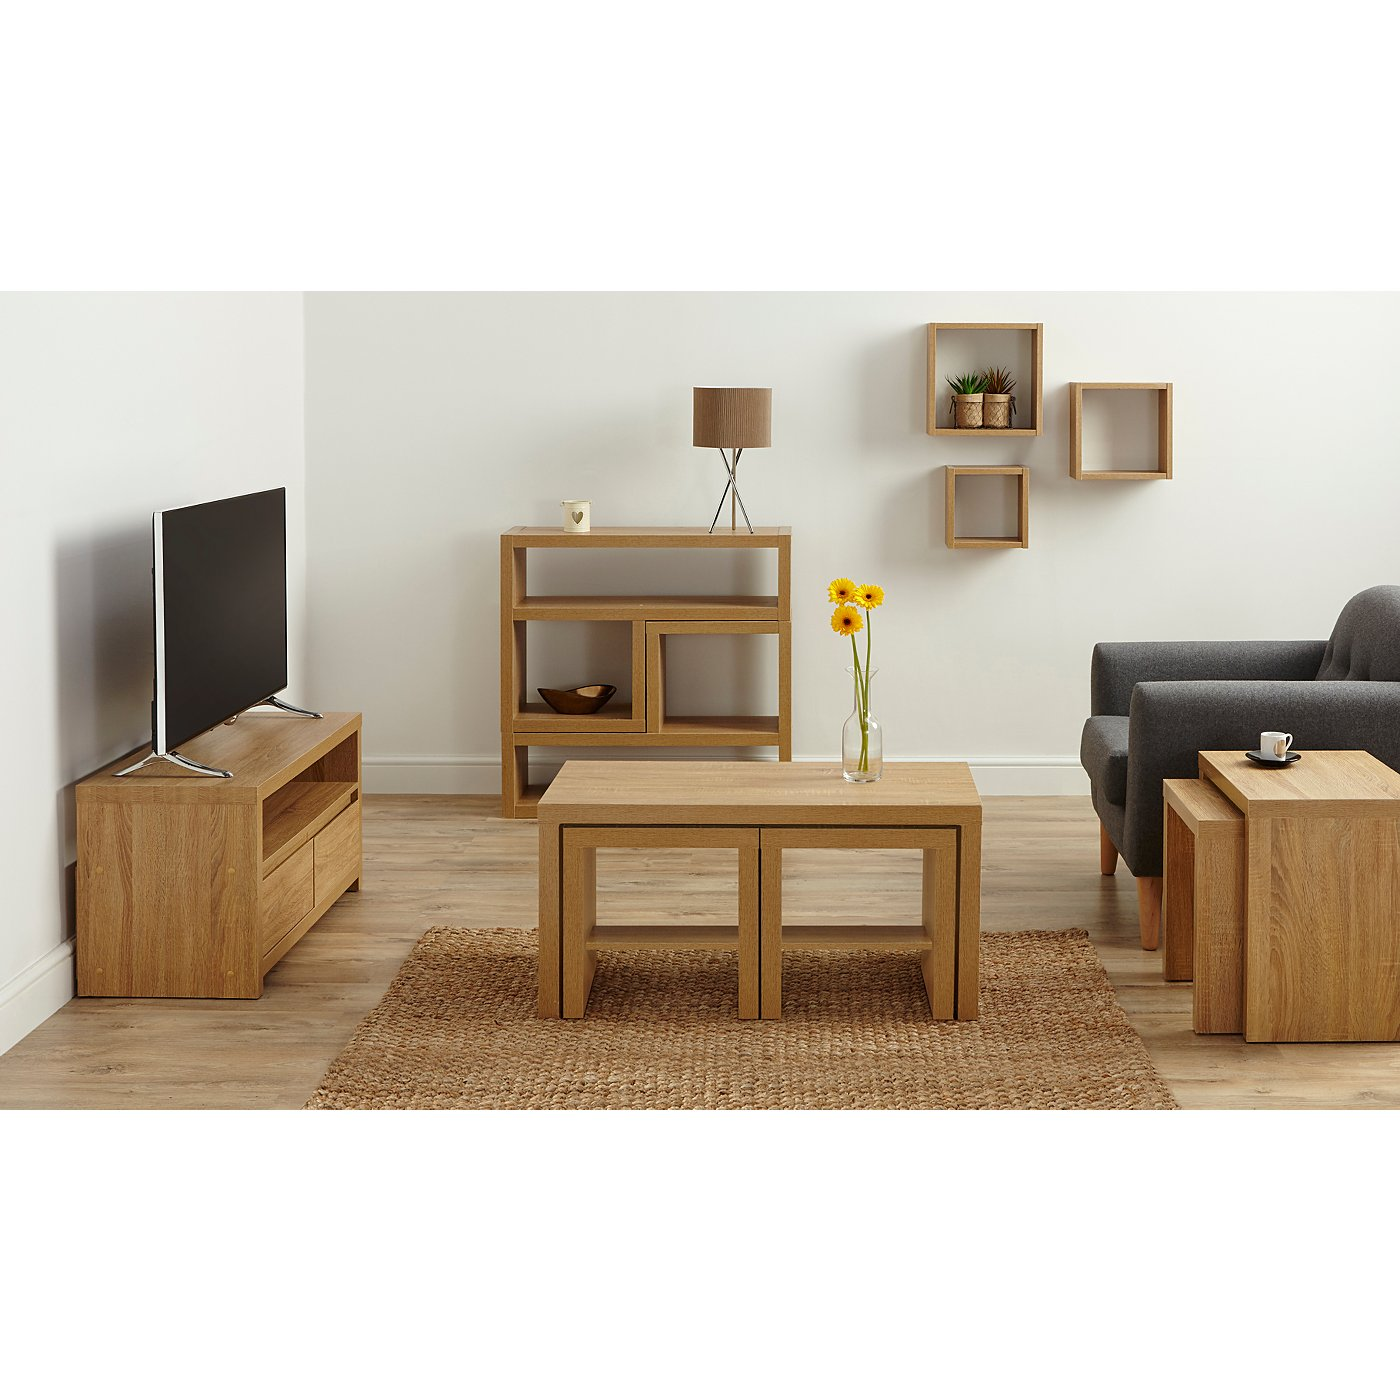 Oak Furniture Living Room George Home Leighton Living Room Furniture Range Oak Effect